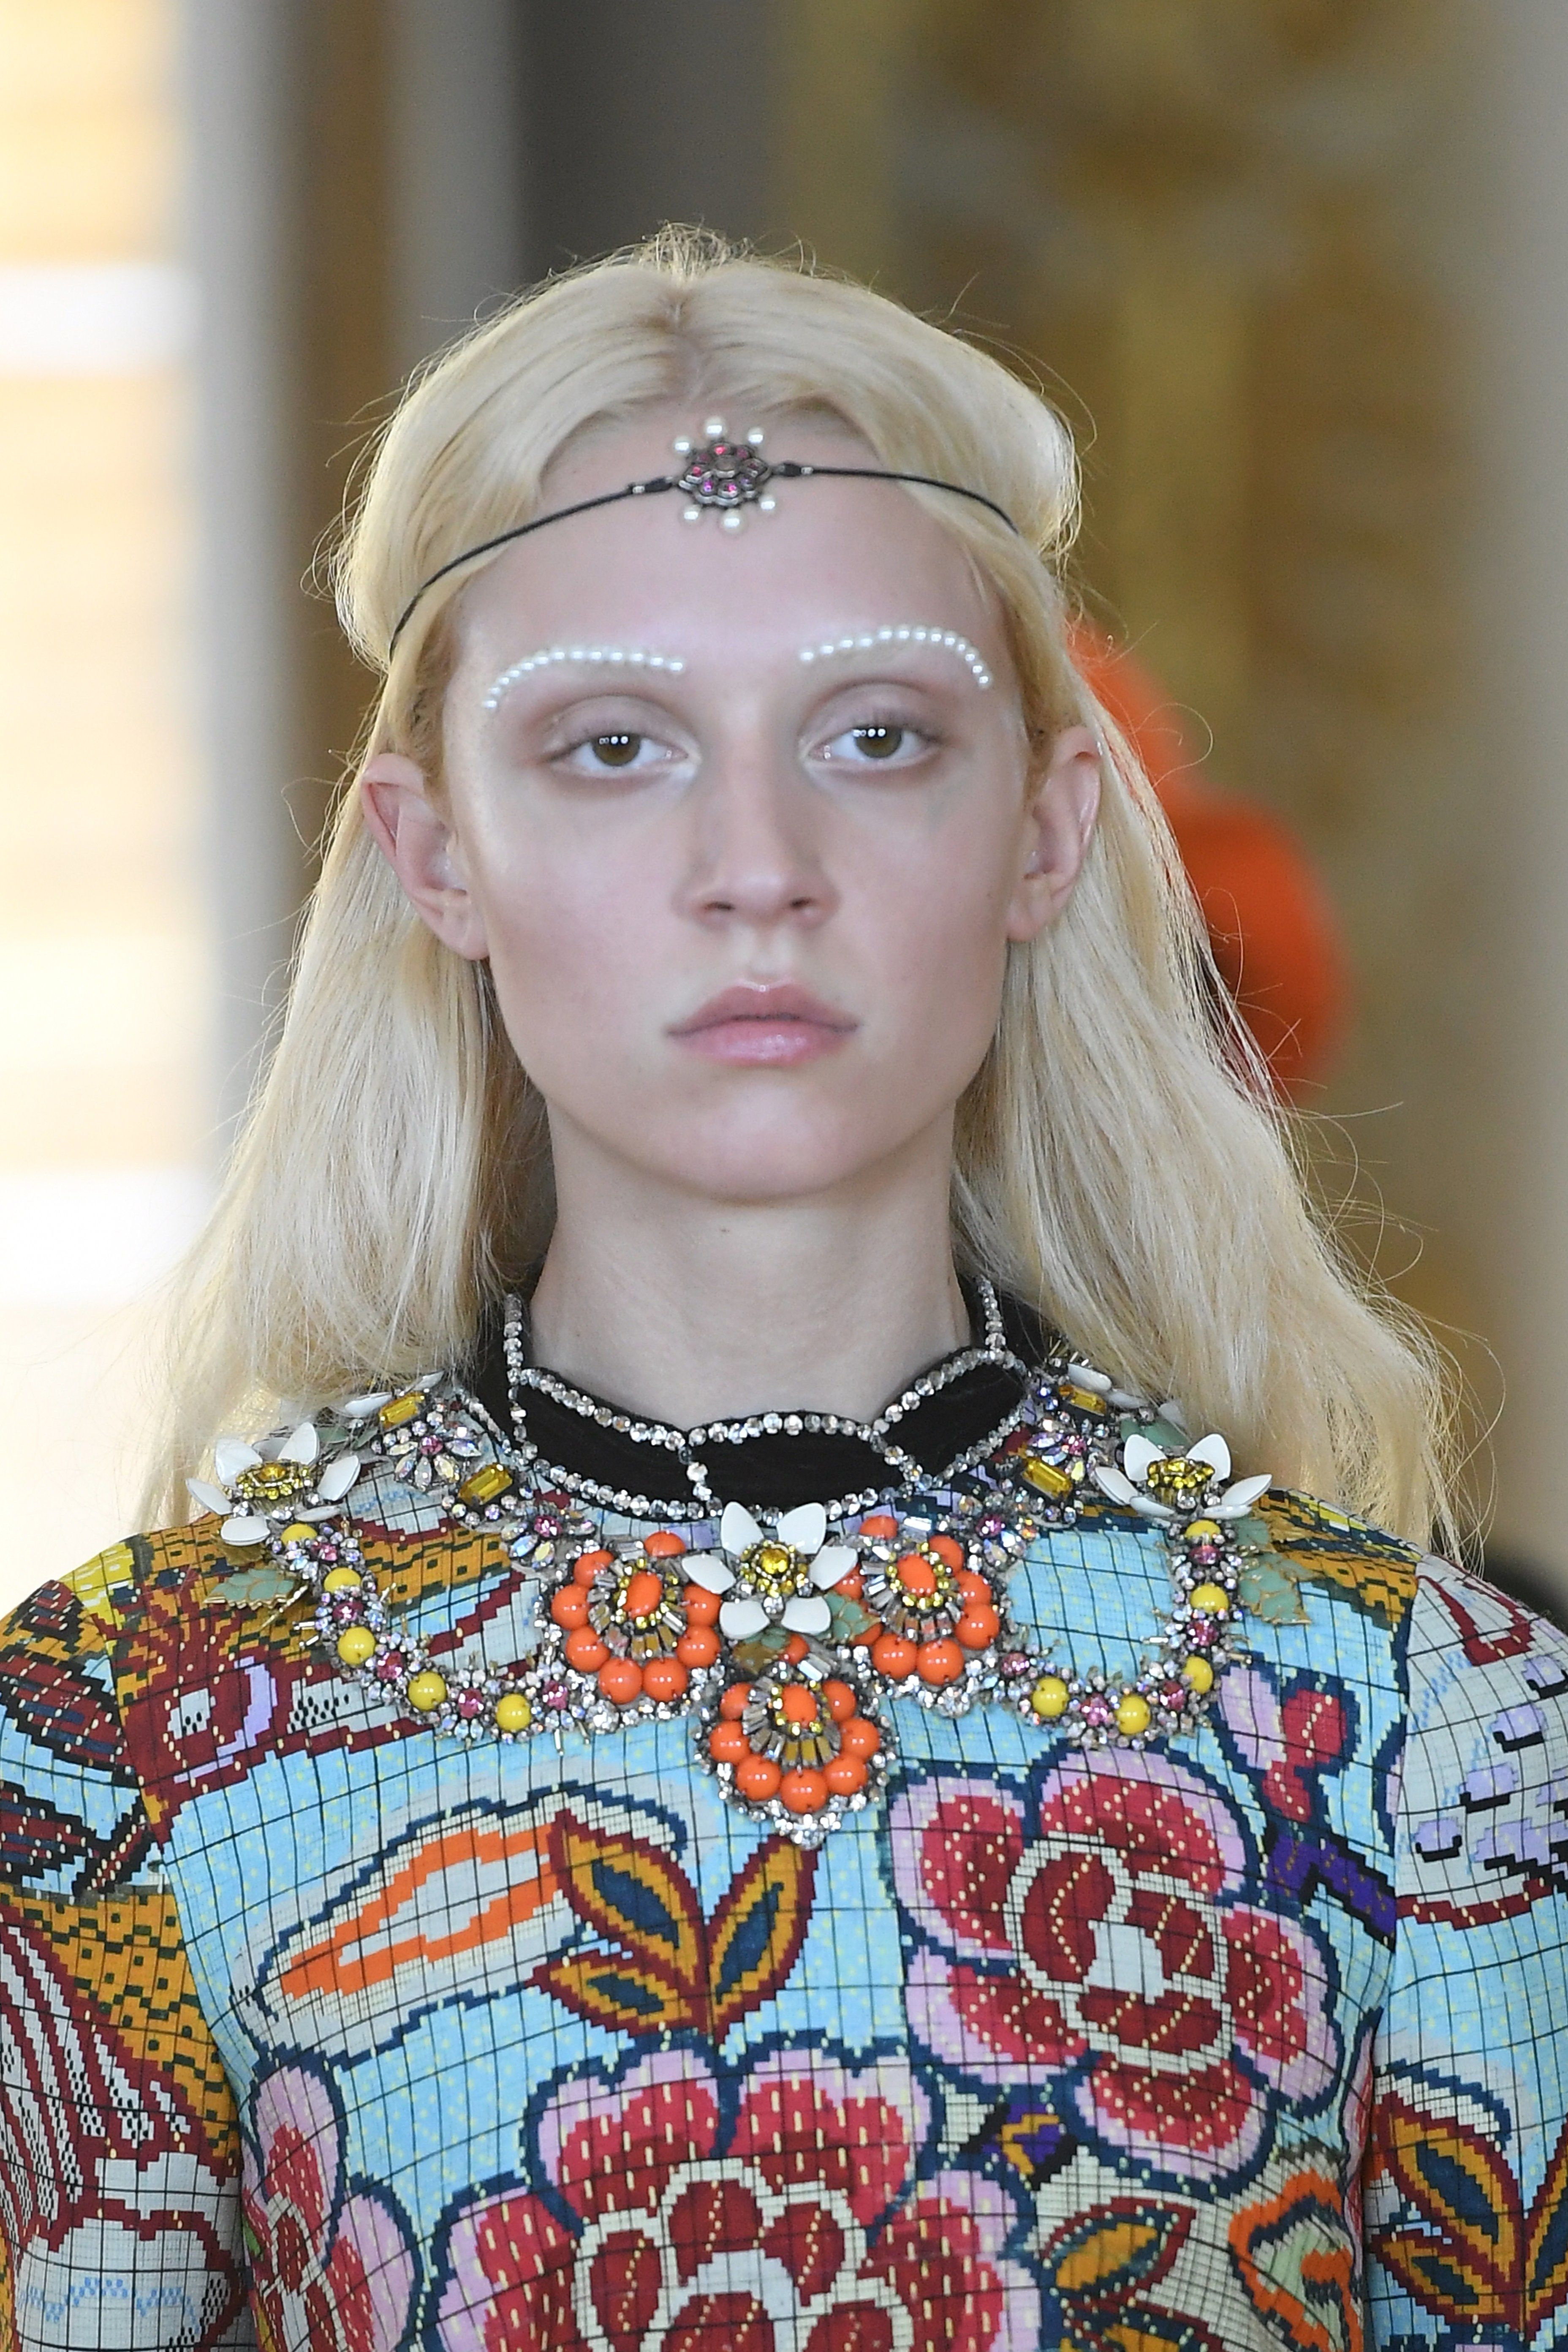 f8cf394acc25 From a Controversial Dapper Dan Reference to Pearl Eyebrows, See Every  Detail from Gucci's Resort 2018 Show Photos | W Magazine